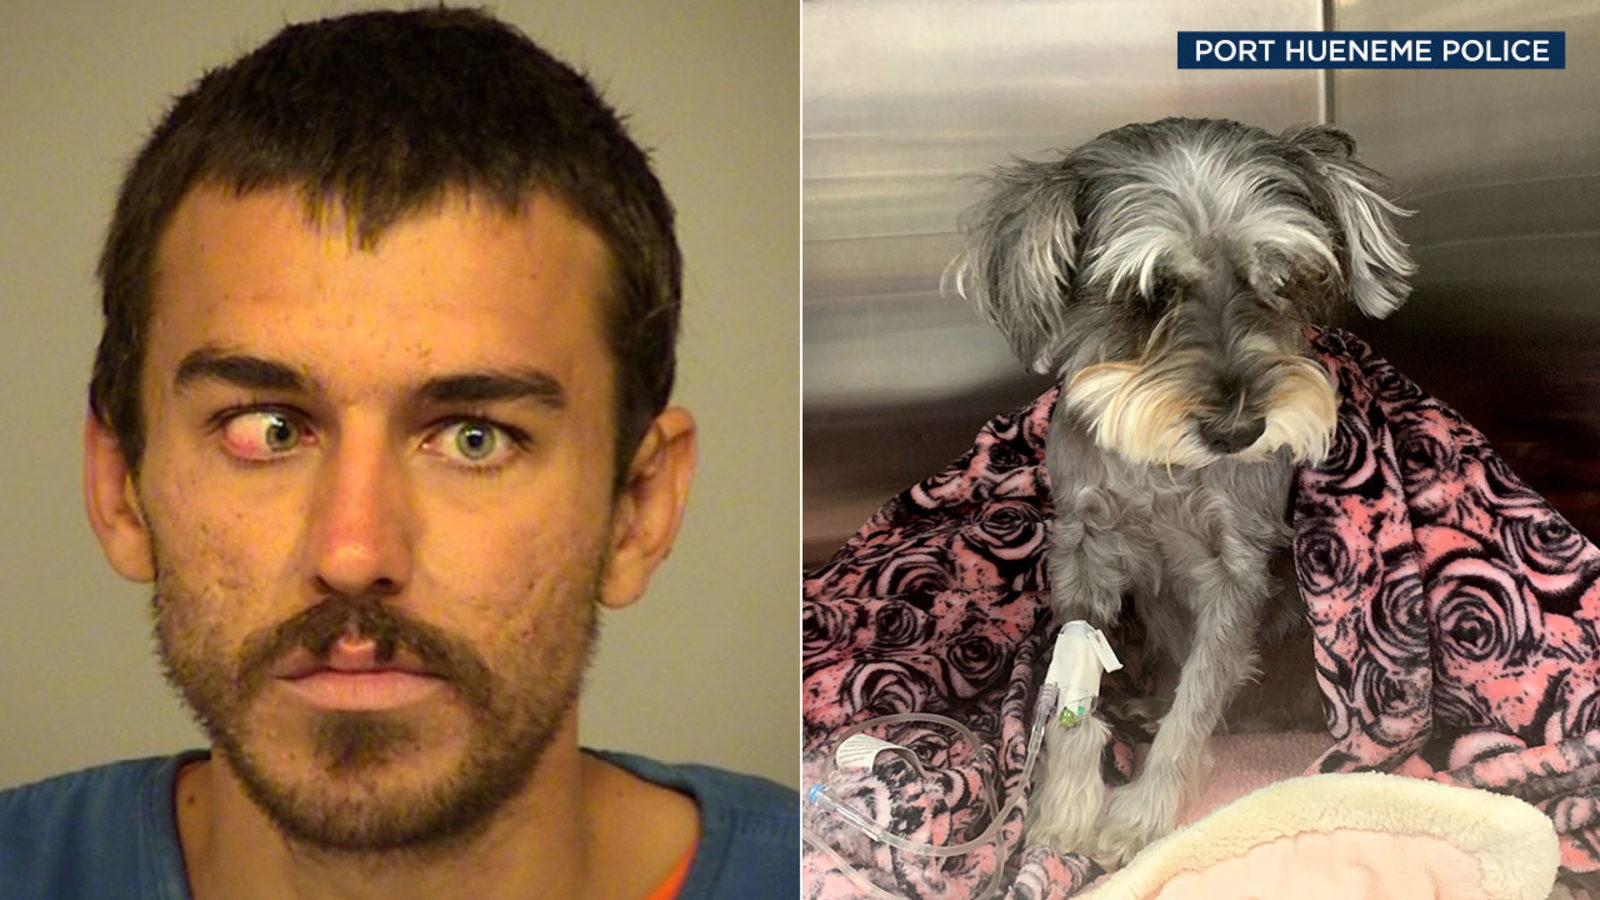 Man kicks stranger's dog 15 feet into air, animal suffers collapsed lung, displaced heart, police say